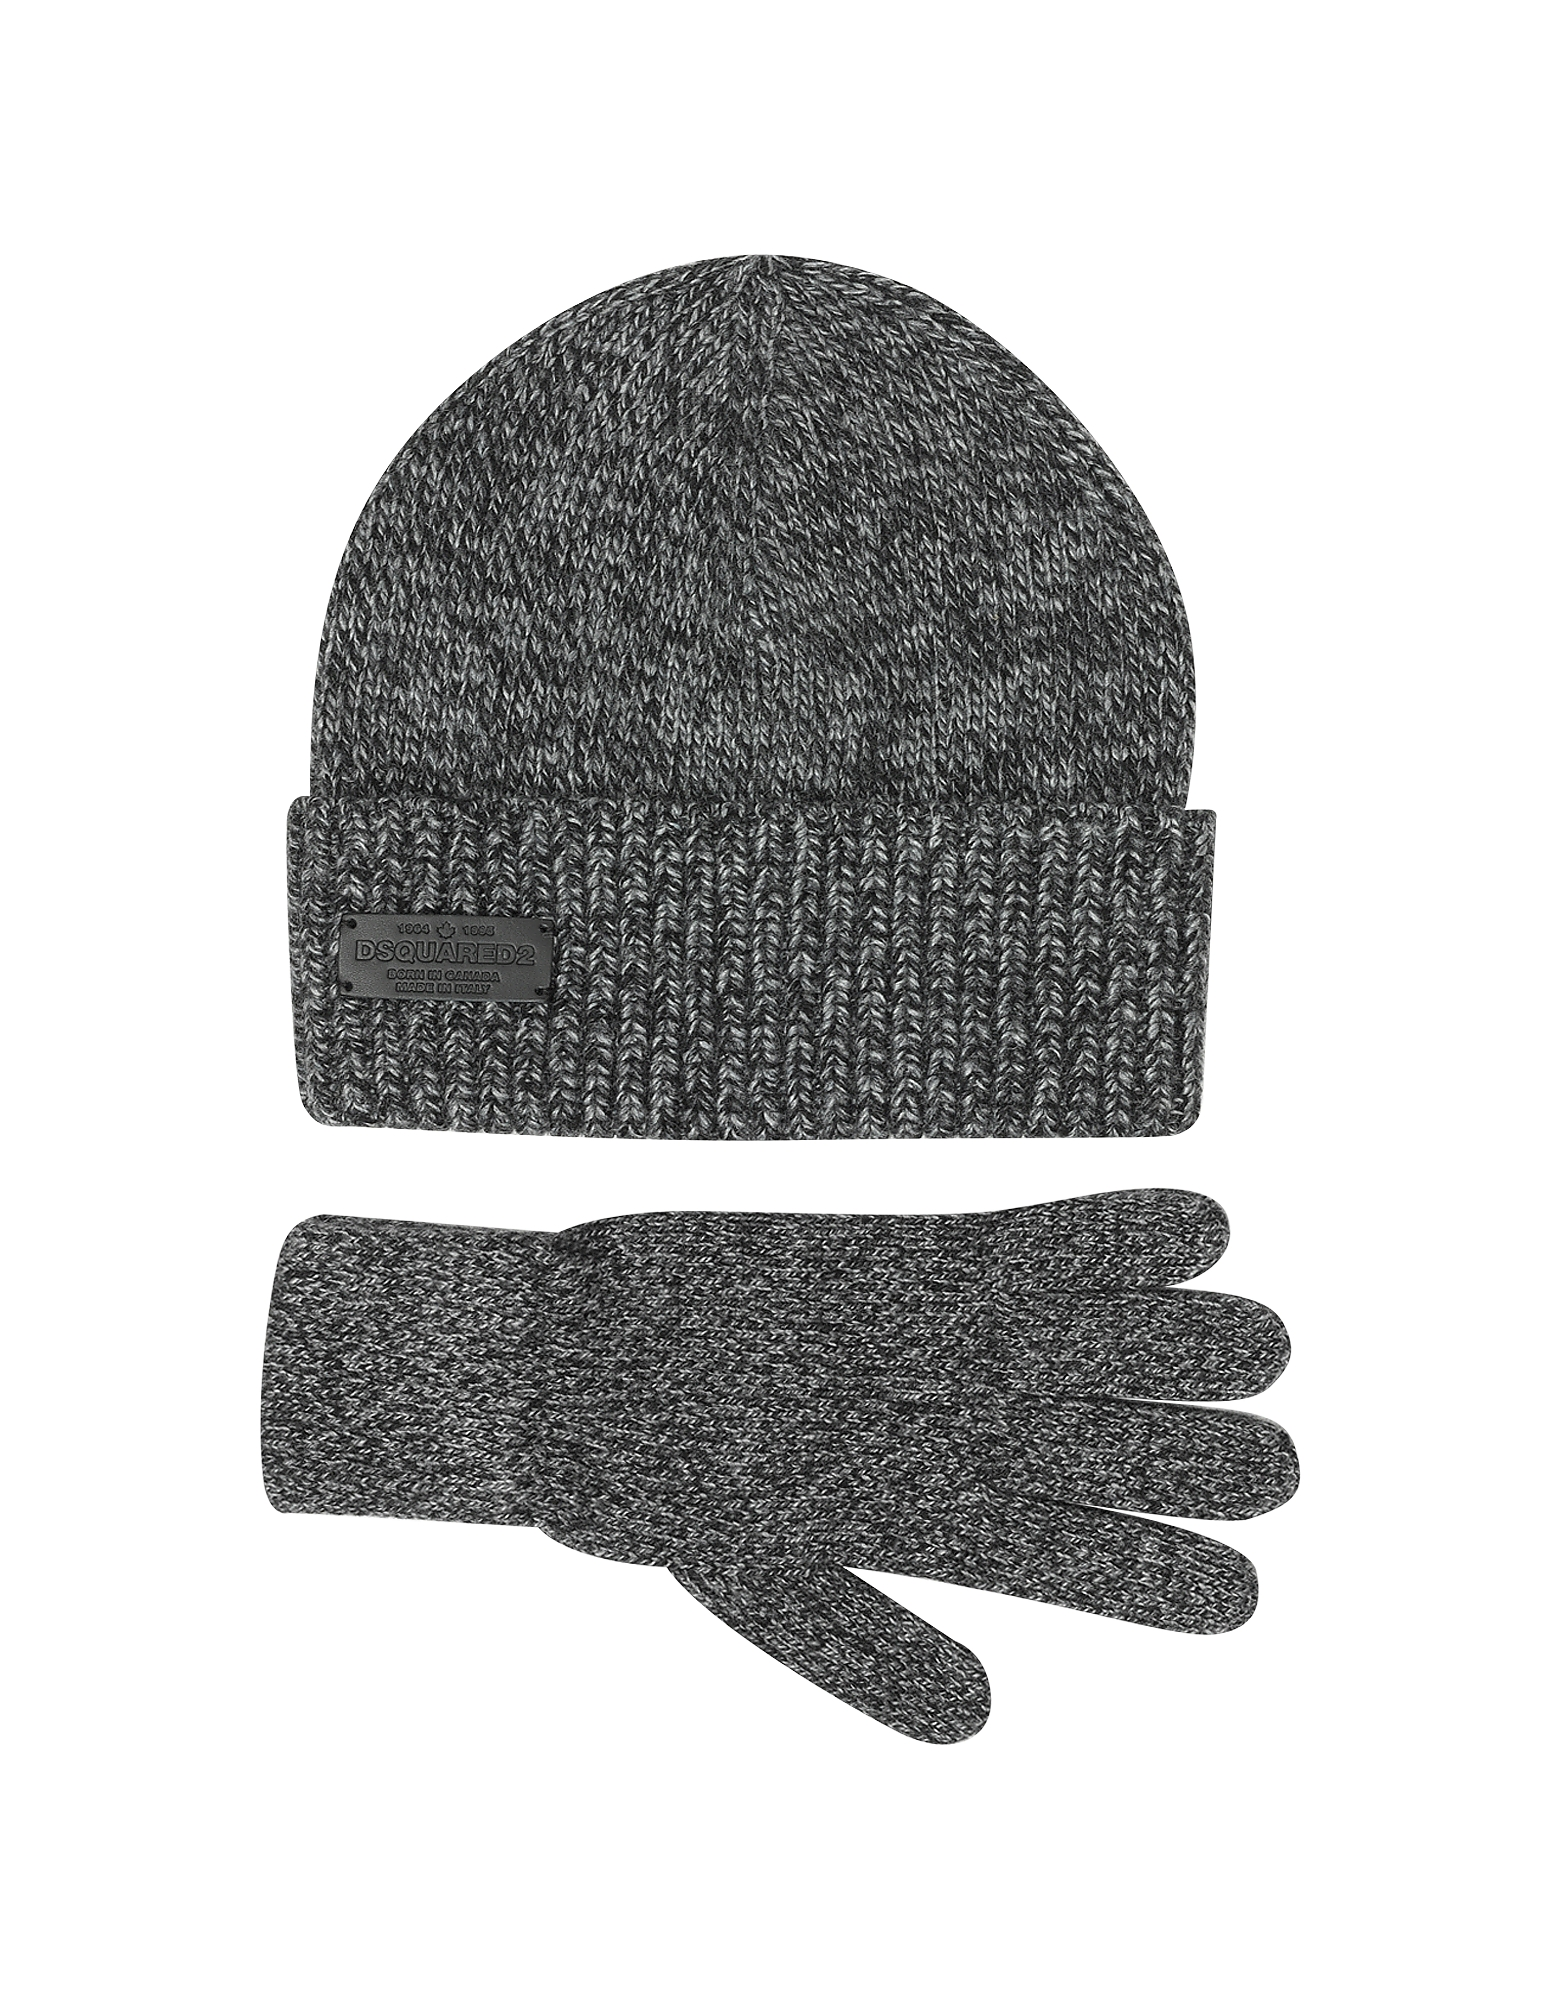 Dark Gray Wool and Cashmere Set of Gloves & Hat от Forzieri.com INT